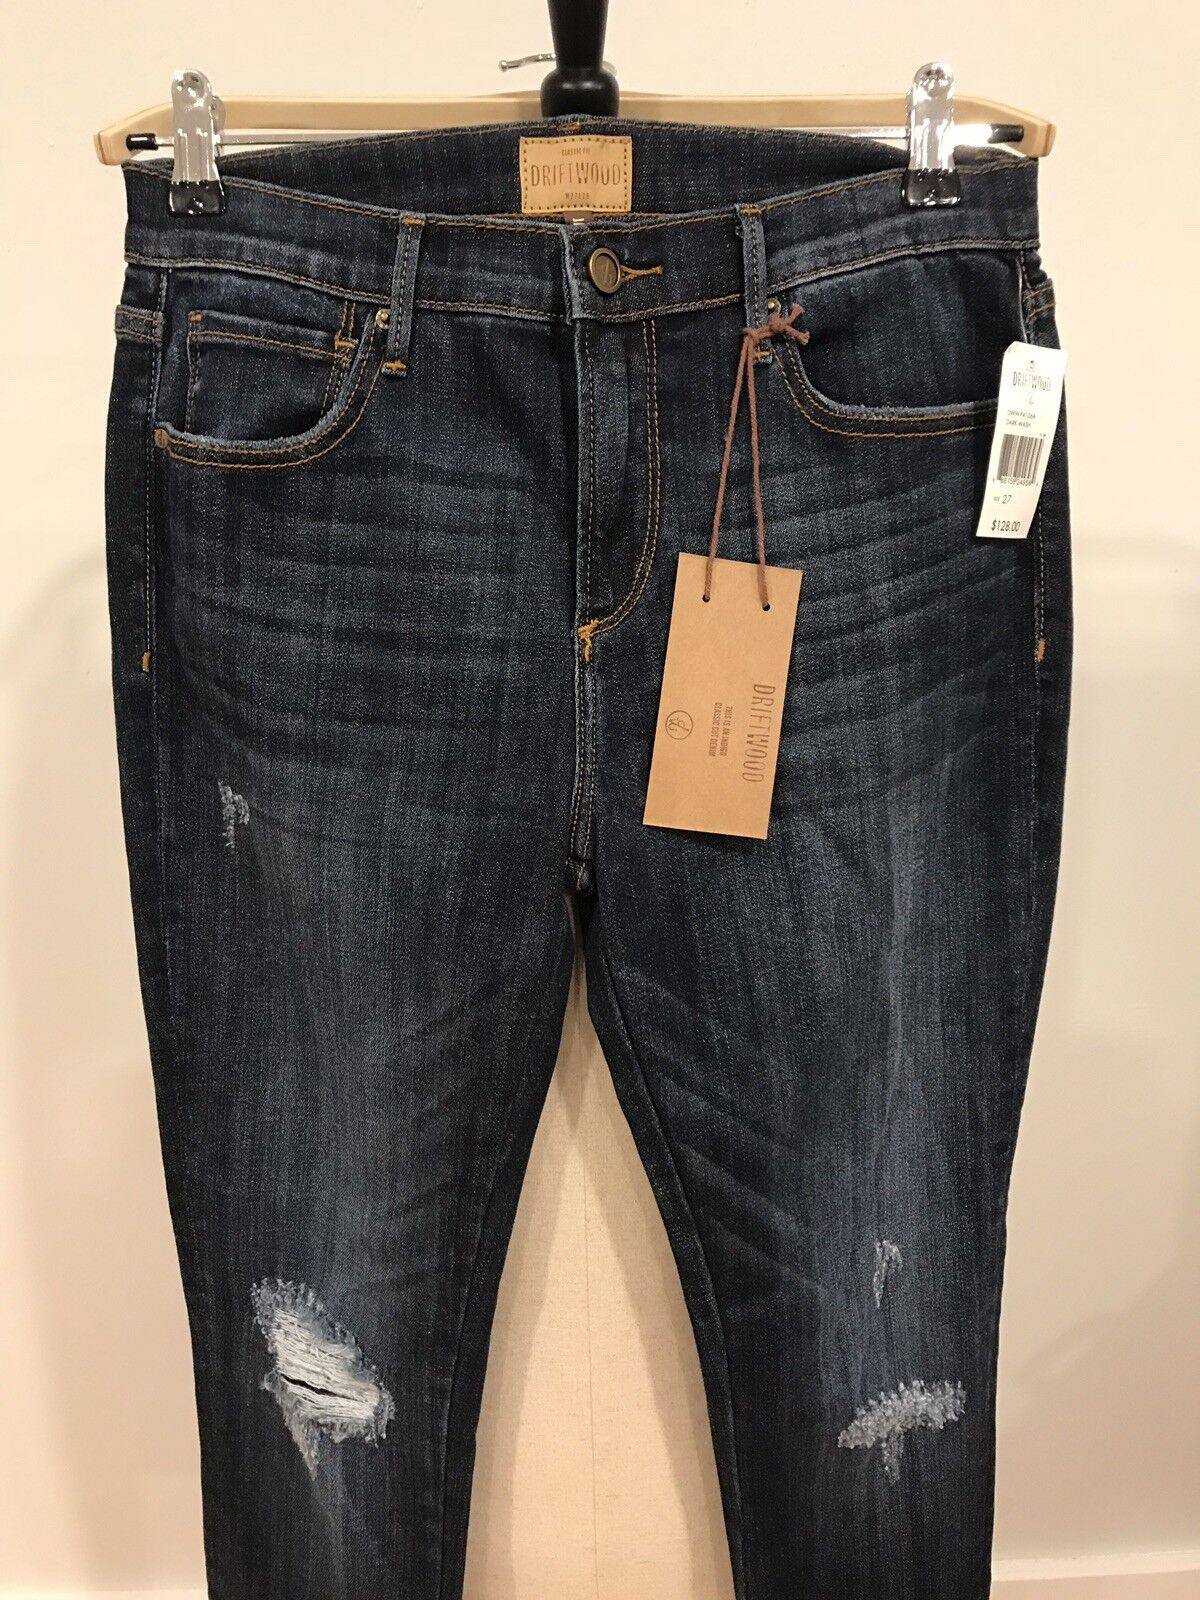 NWT Driftwood Womens Embroidered pinks Denim Jeans Size 27 New